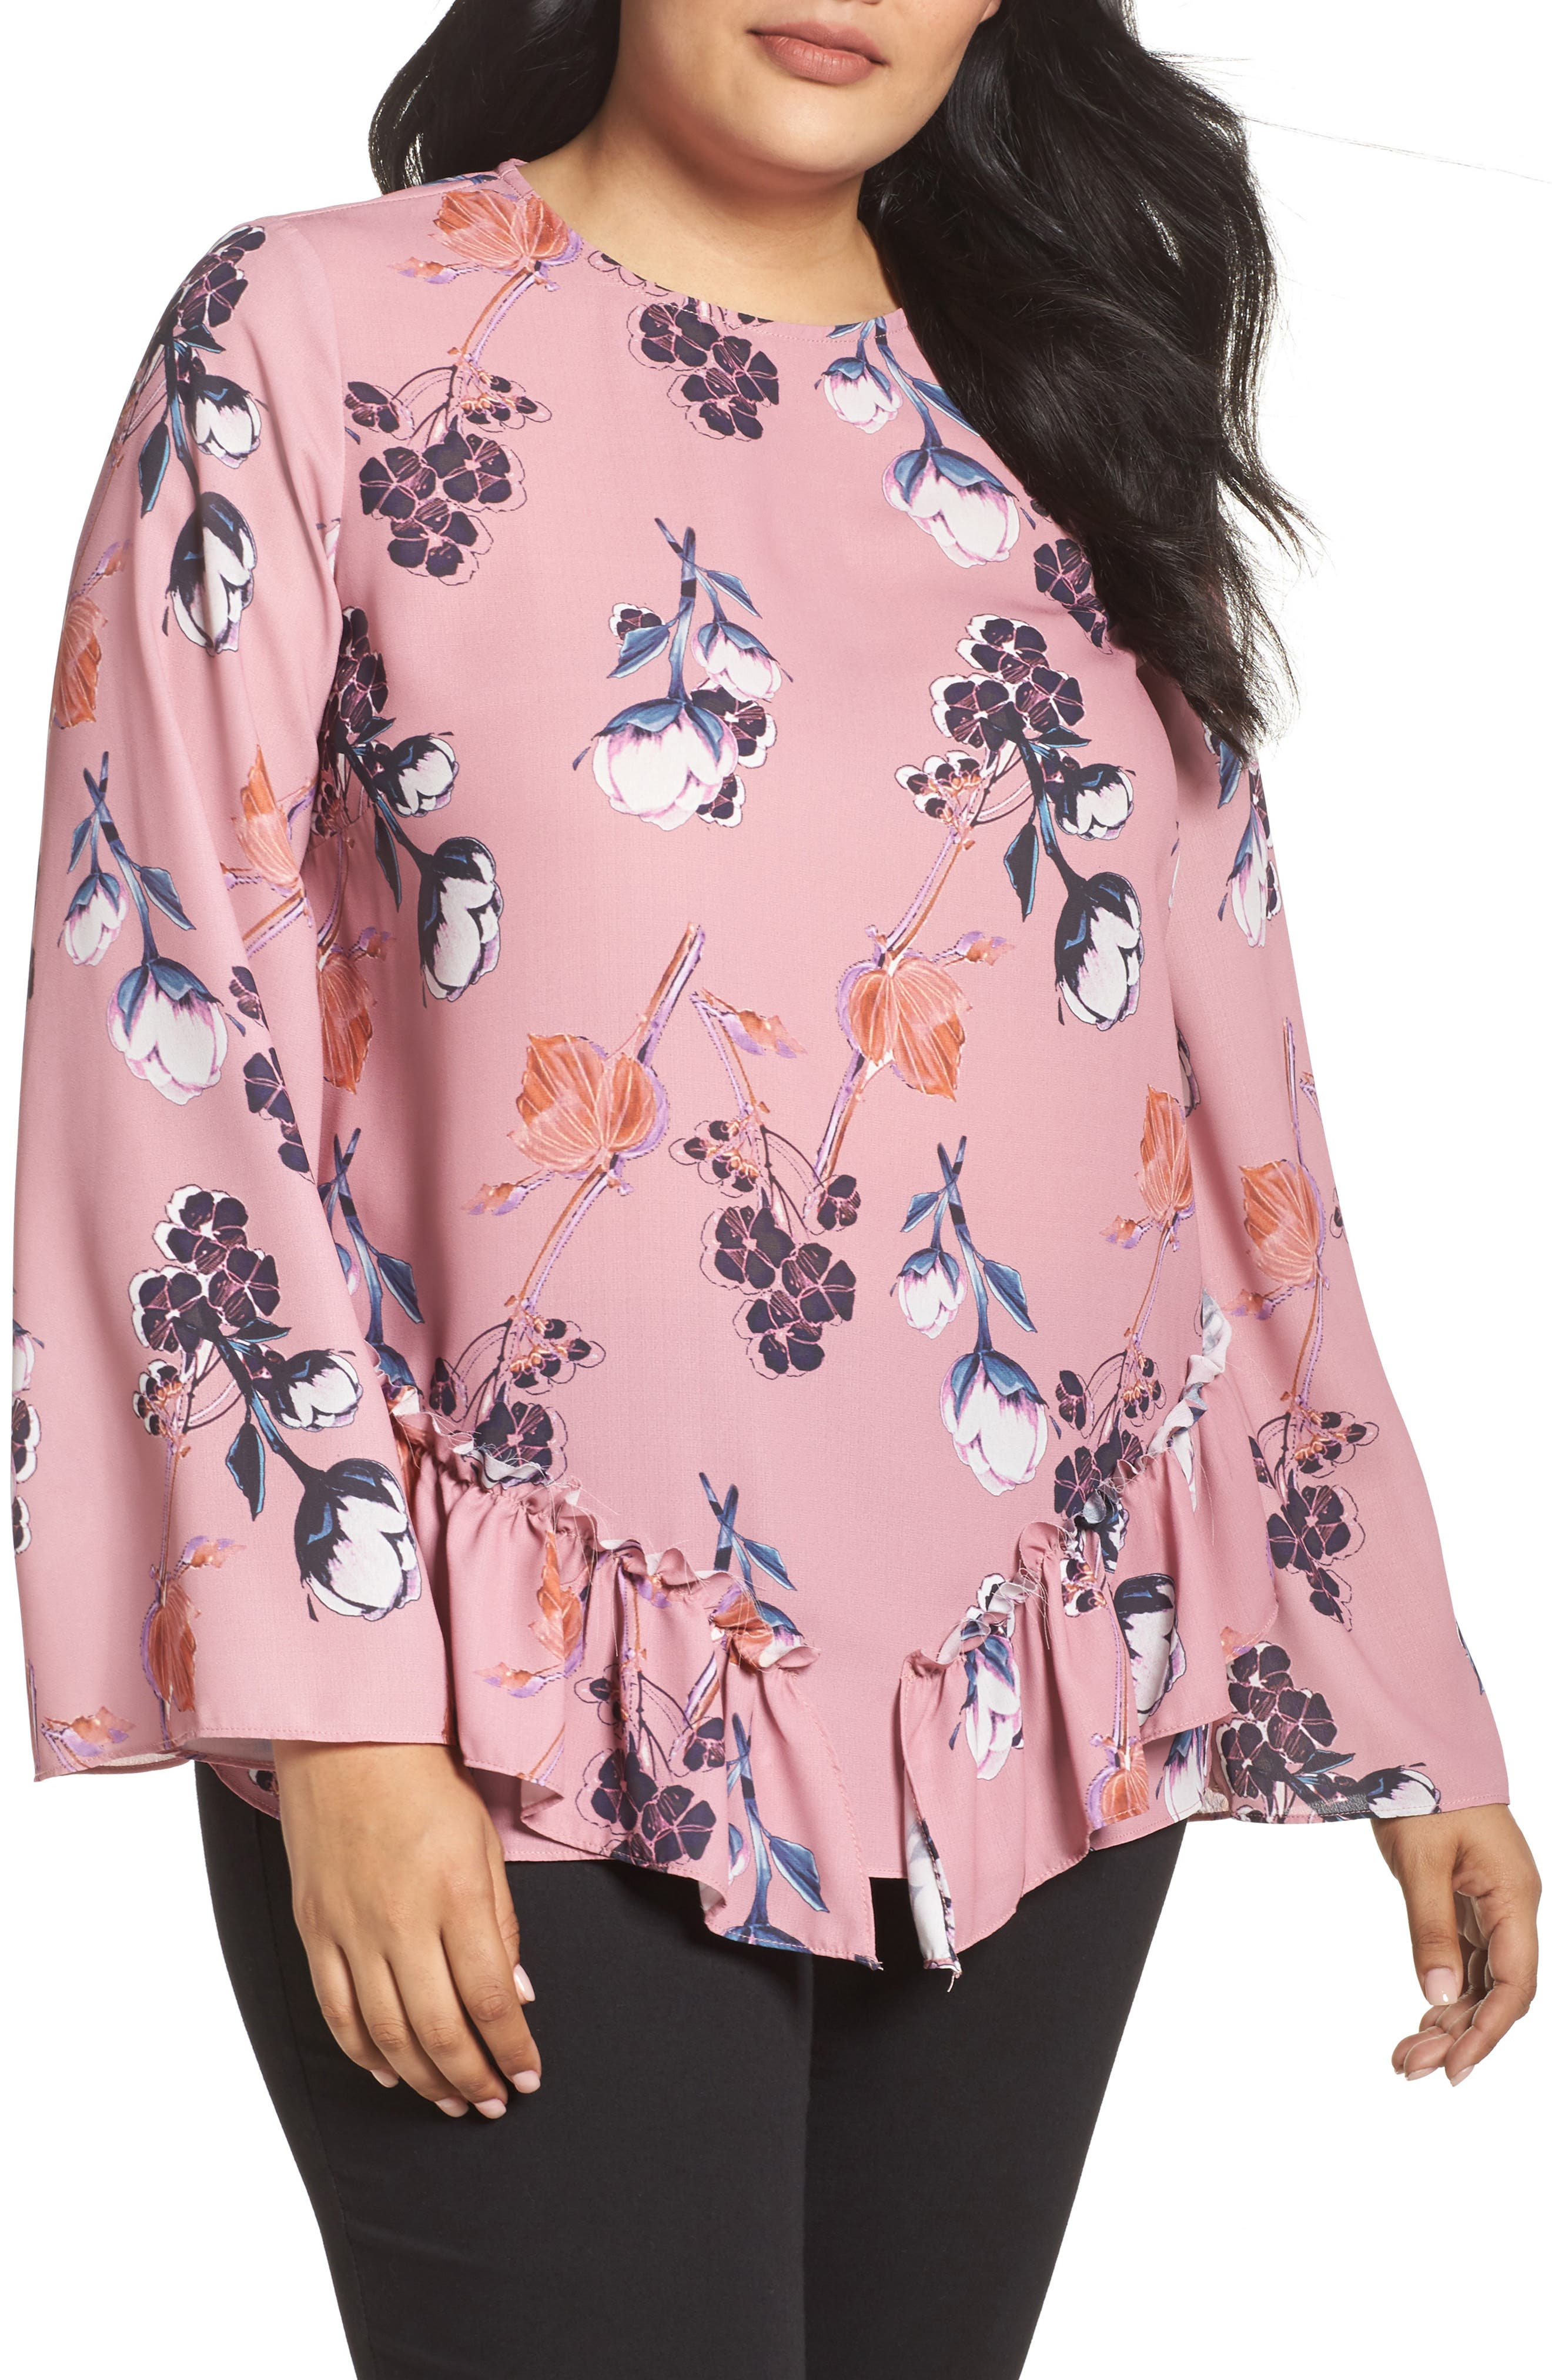 Main Image - LOST INK Ruffle Hem Top (Plus Size)